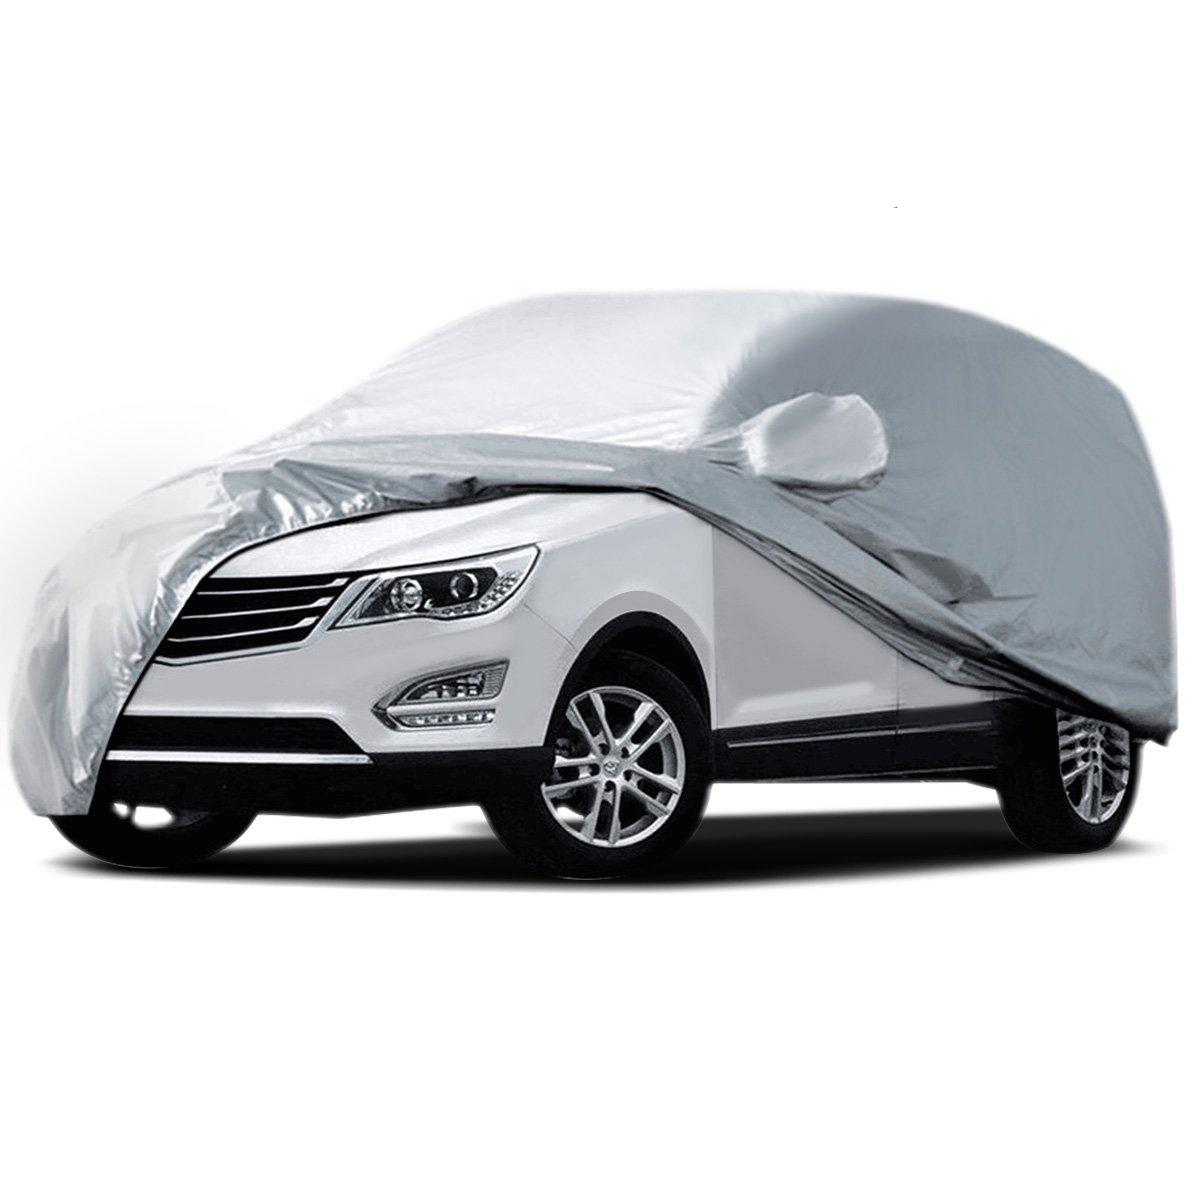 Waterproof Lightweight Nylon Car Cover for SUVs